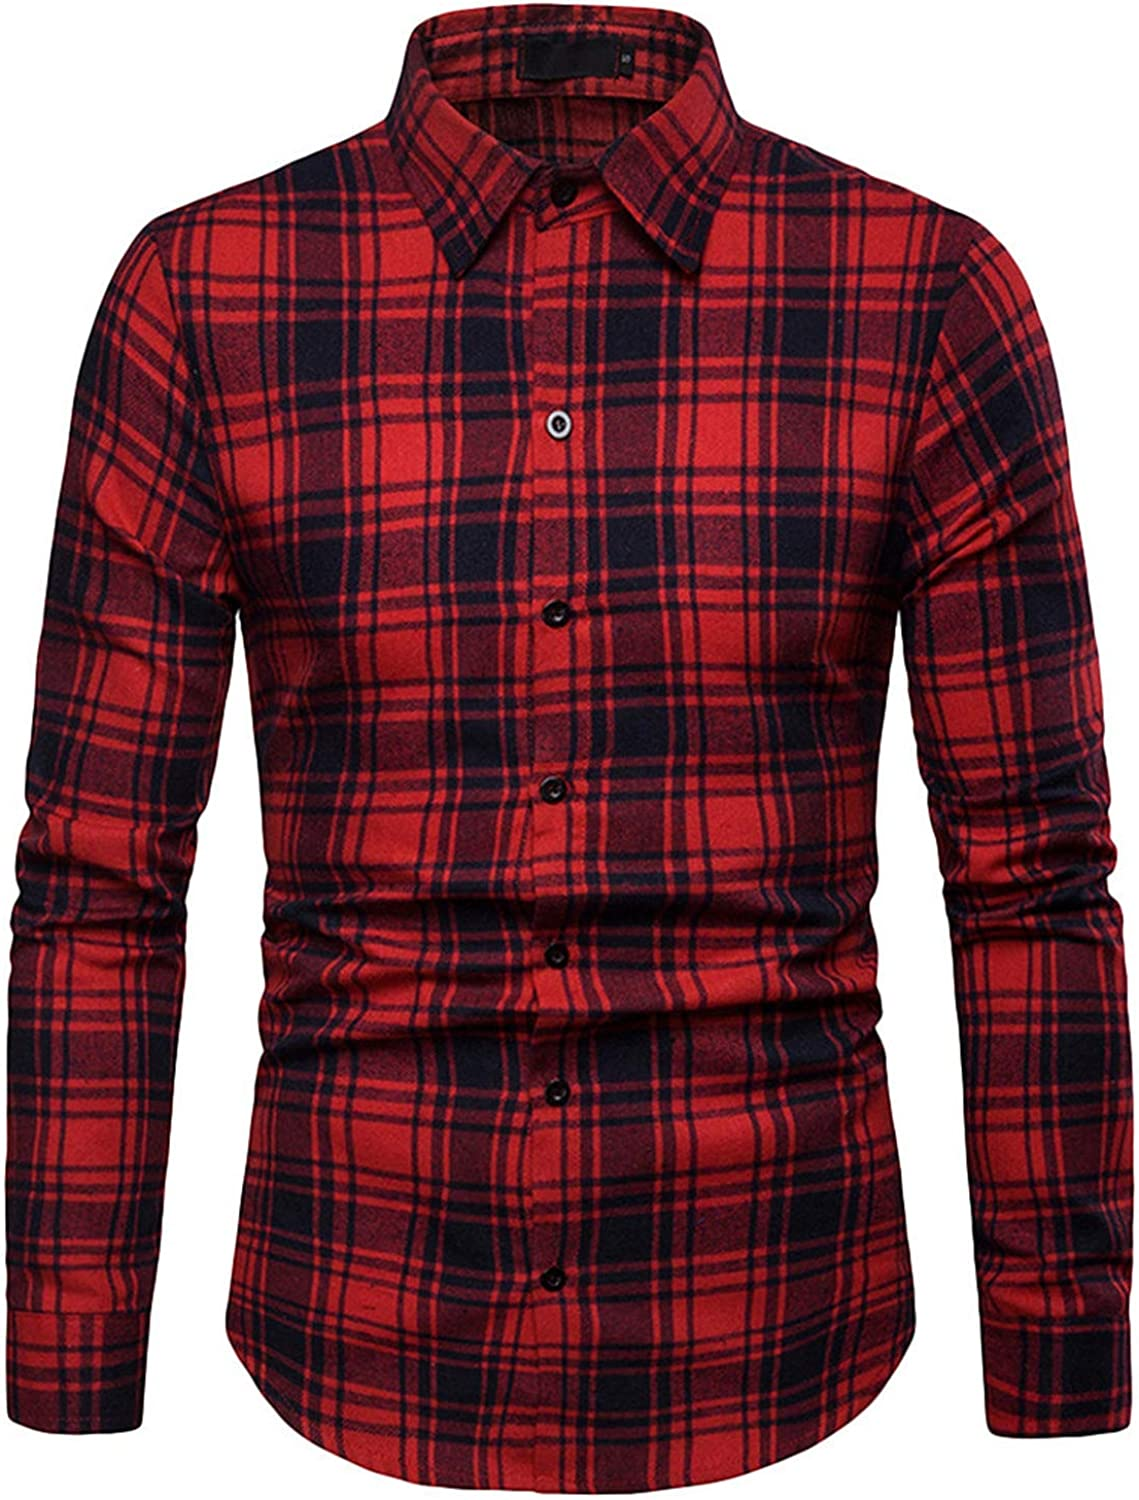 Mens Blouse Autumn Winter Style Tops Small Lattice Business Casual Long Sleeved Shirt for Mens,Black,S,United States